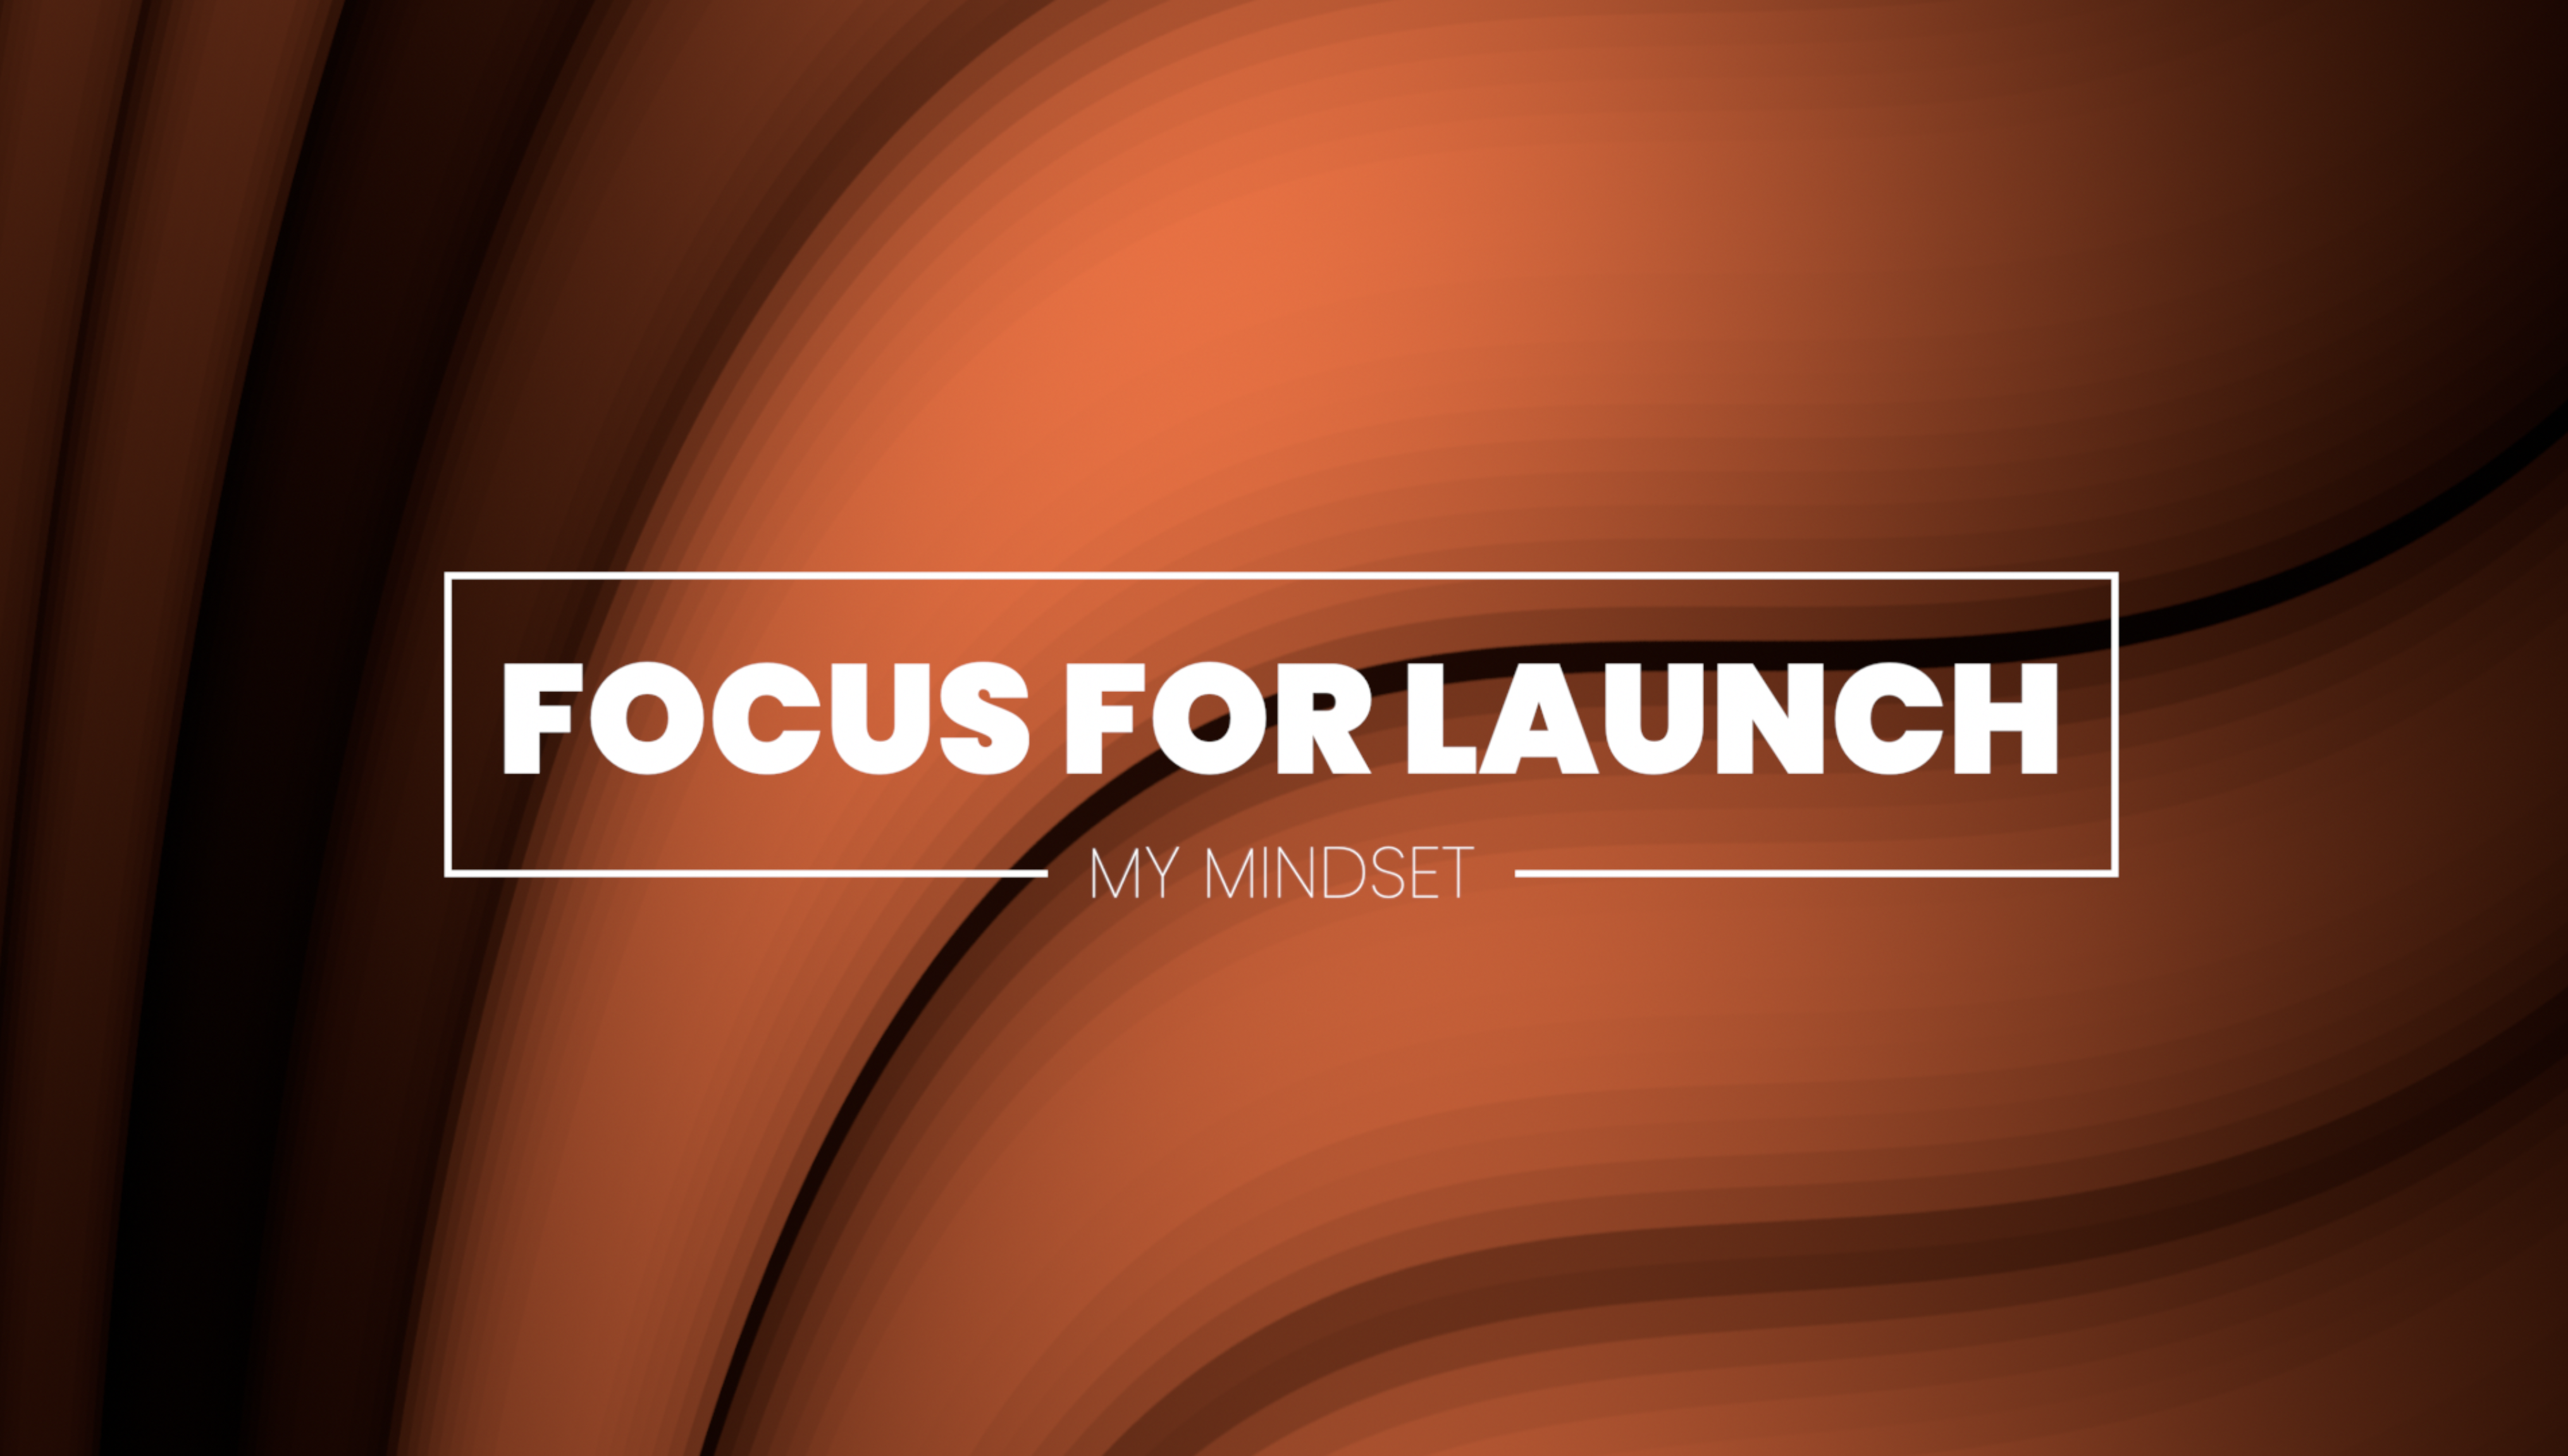 Focus for Launch 1